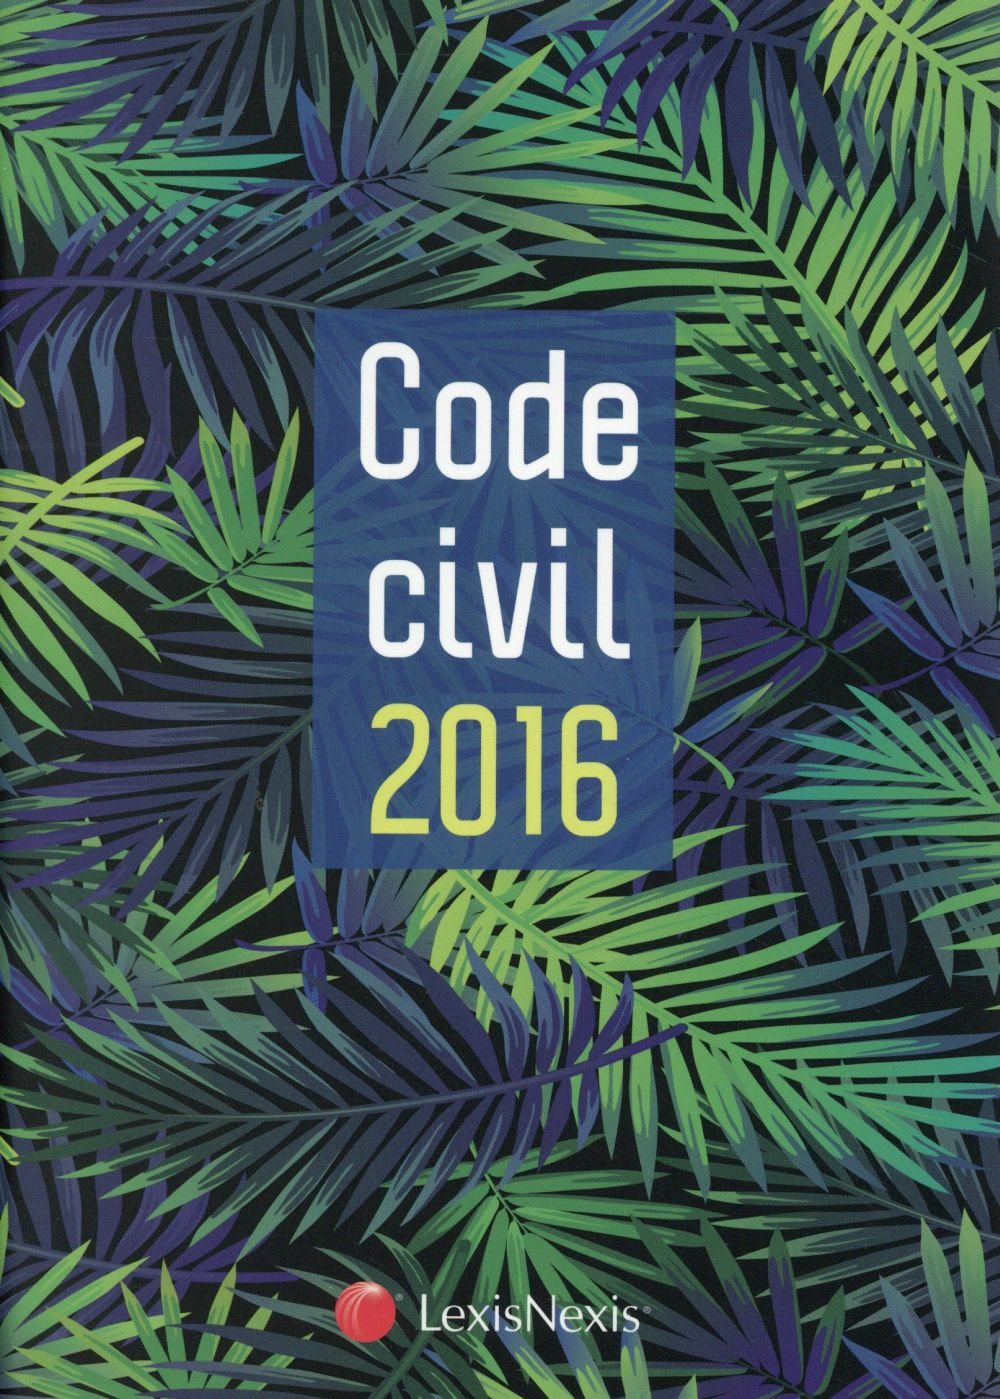 CODE CIVIL 2016  JAQUETTE PALMES - 35E TIRAGE